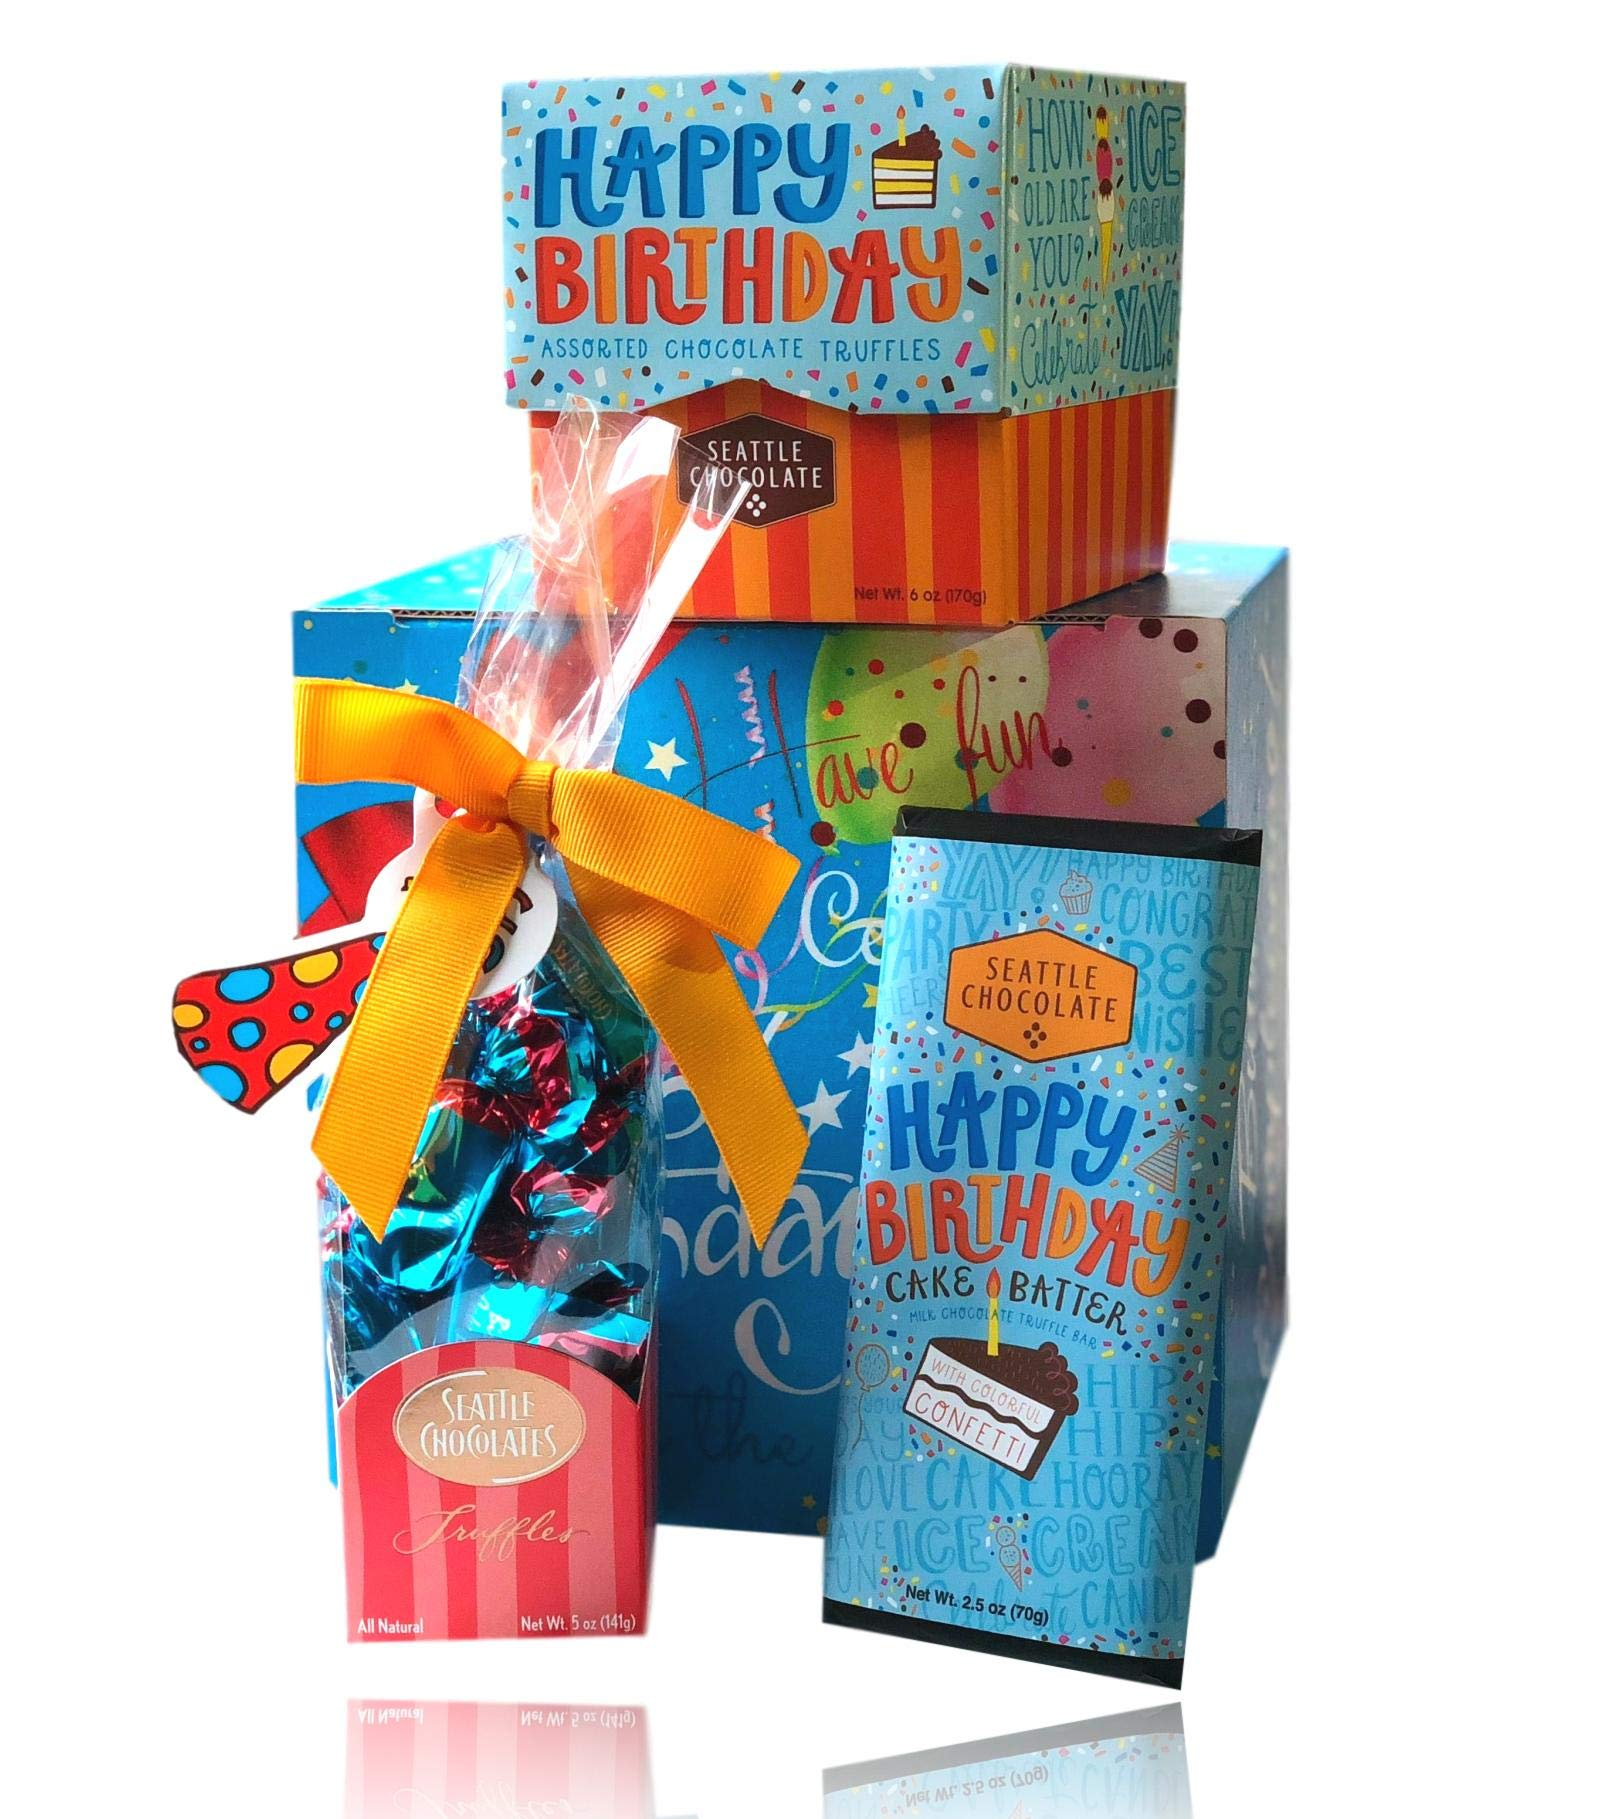 Happy Birthday Chocolate Set By Seattle Chocolates Premium Quality All Natural Non-GMO Chocolate by Seattle Chocolates